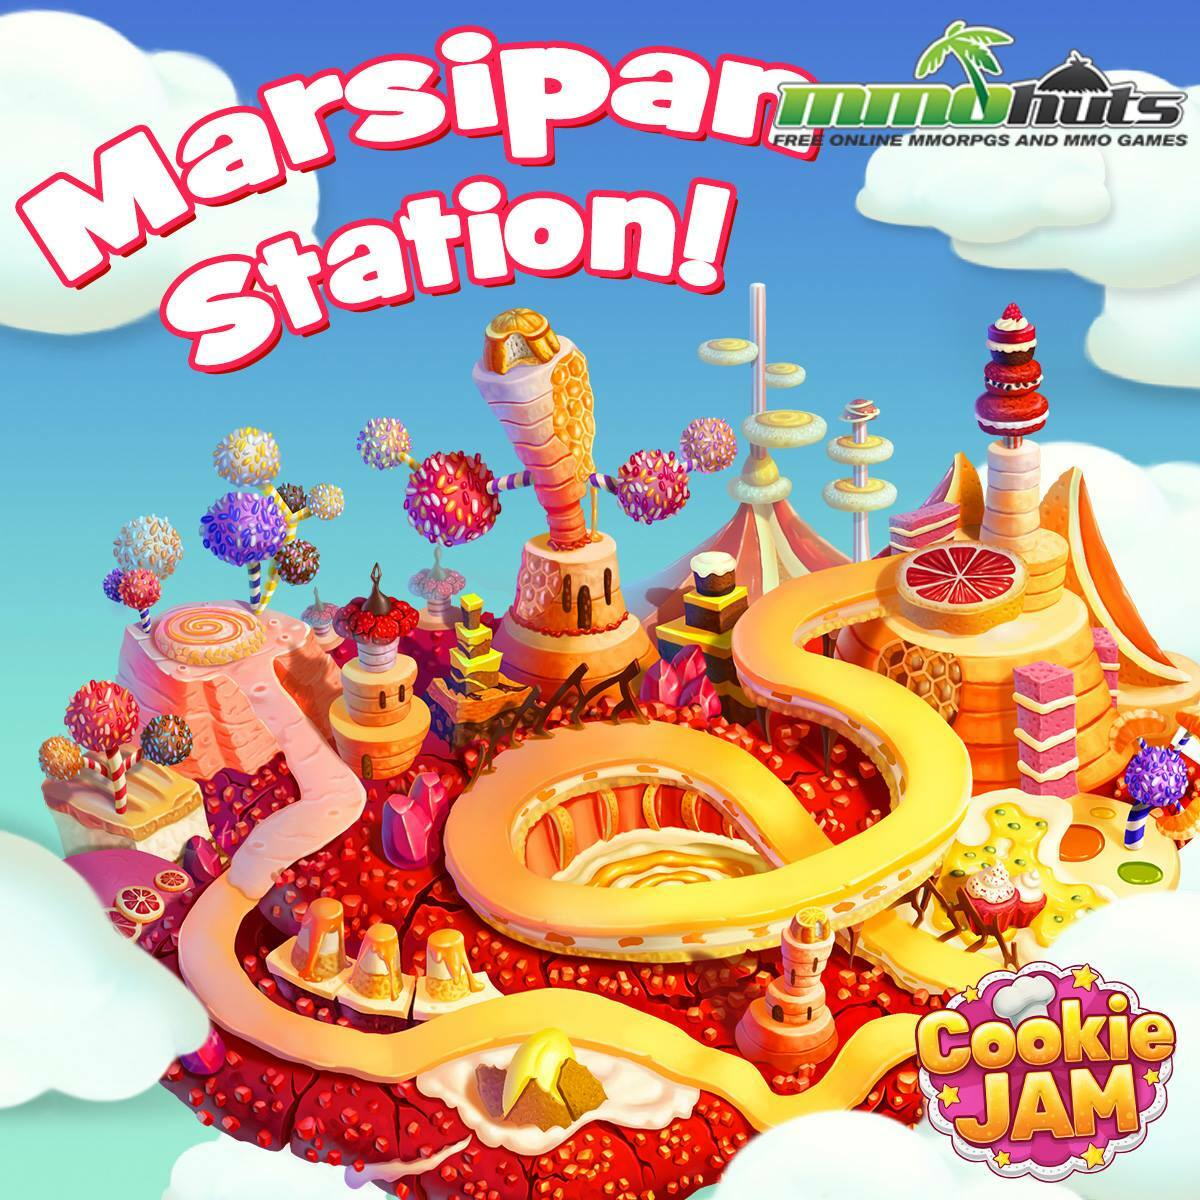 Cookie Jam Marsipan Station Level 26 In Cookie Jam